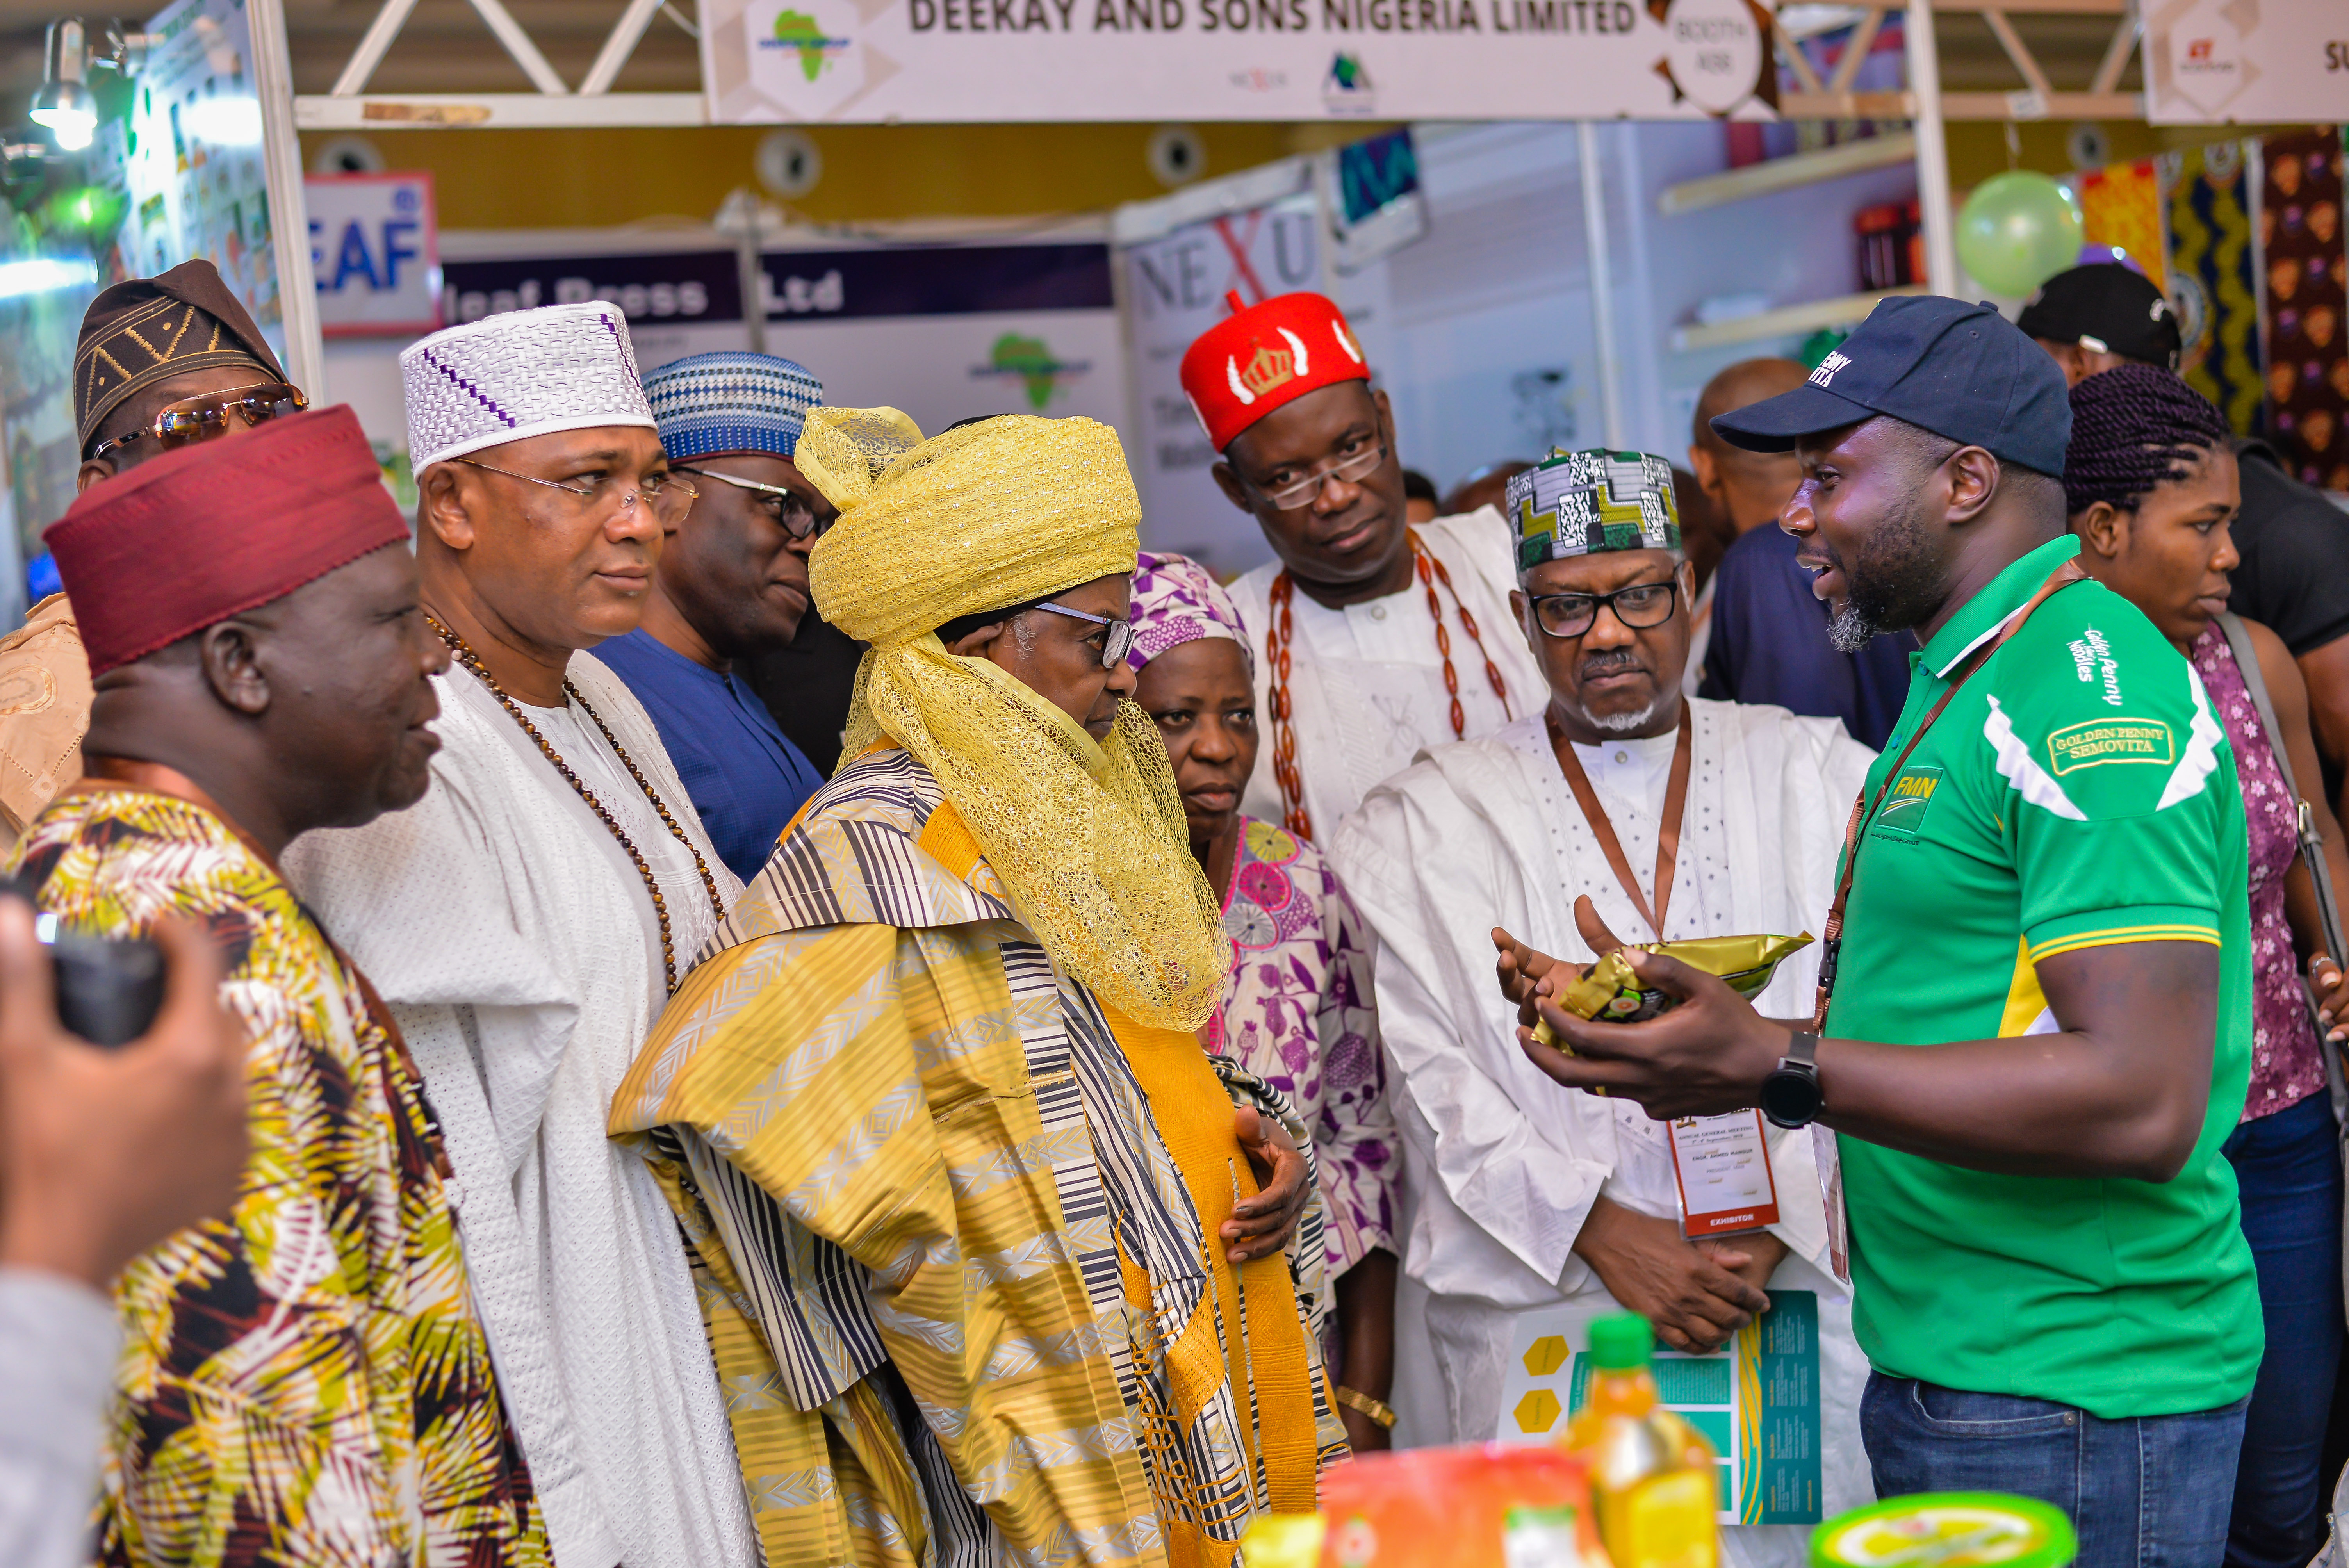 MAN President in company of Amb. Adamawa & MAN EXCO officials during a tour at the exhibition venue